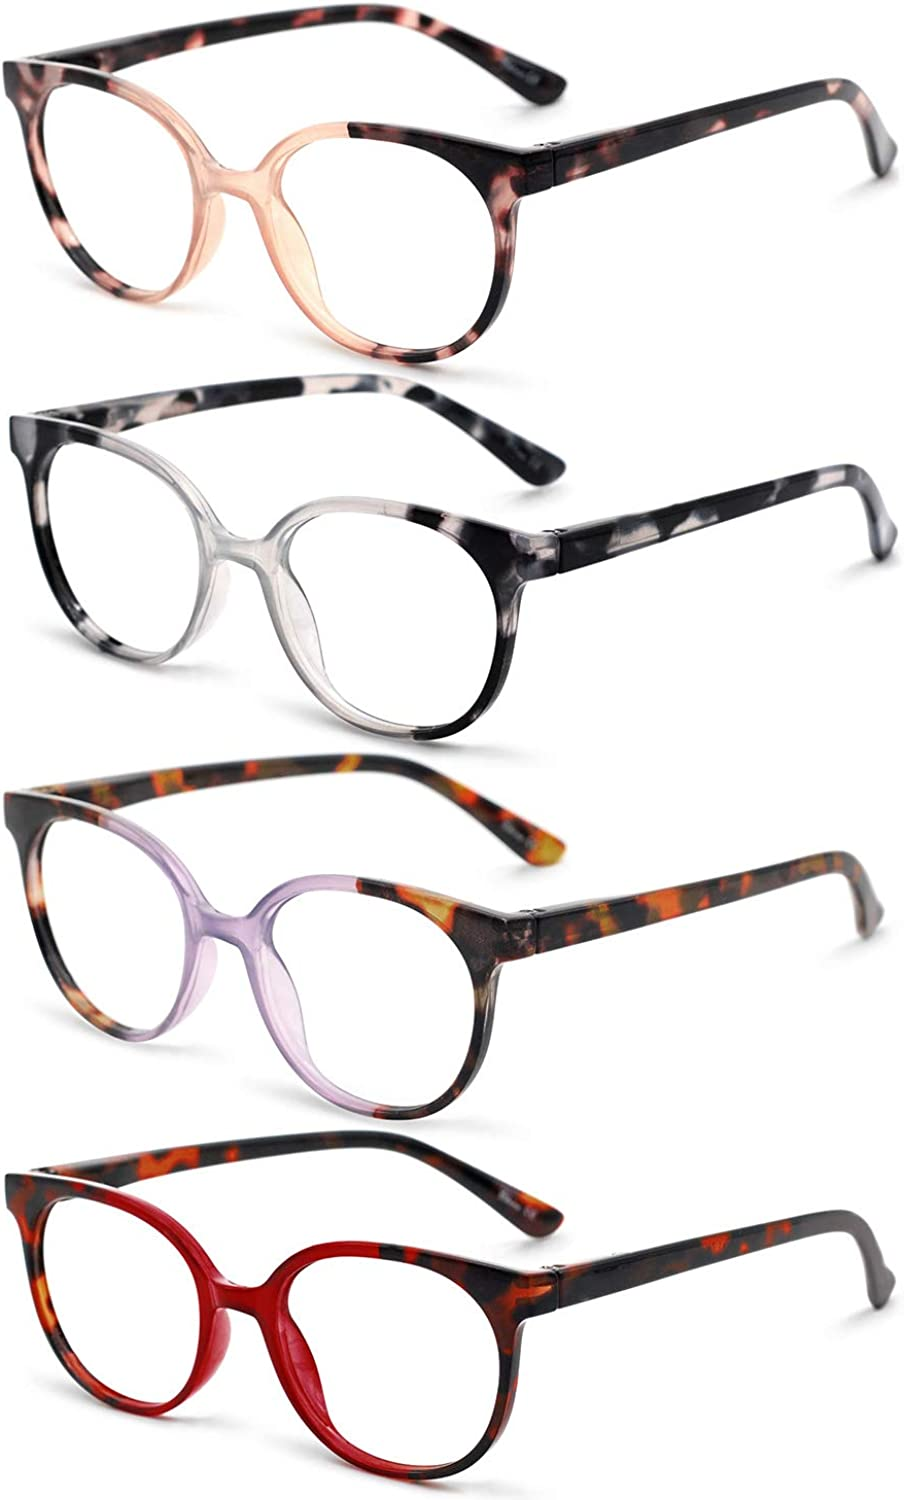 Latest item OCCI CHIARI Stylish Reading Glasses 1.0 1.5 A surprise price is realized Reader 1.25 Women's